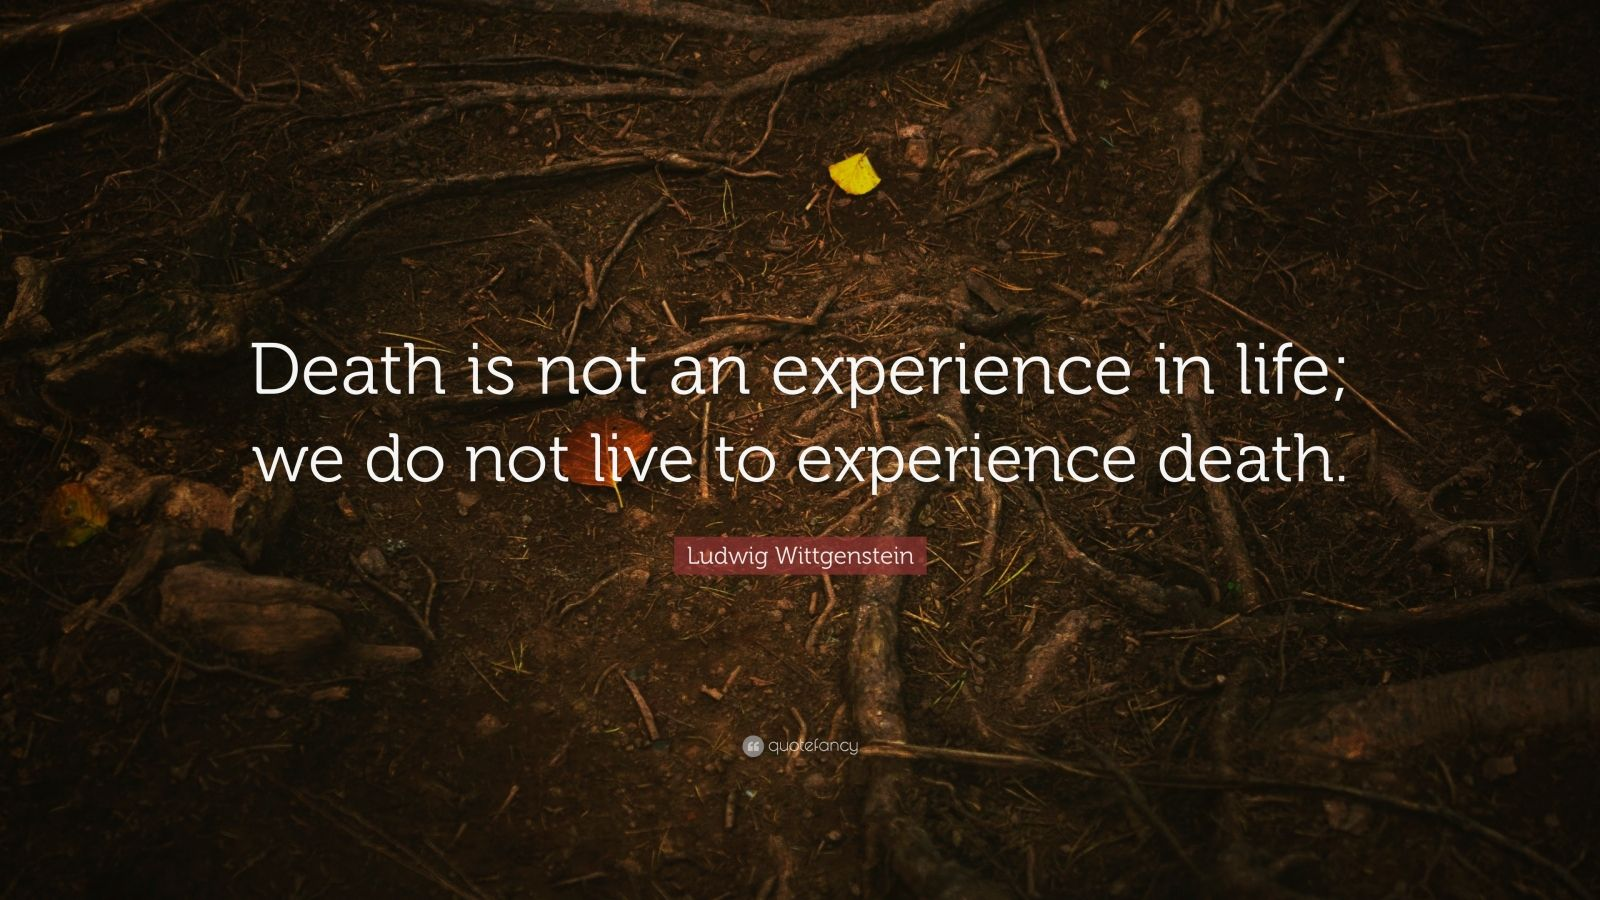 """Ludwig Wittgenstein Quote: """"Death is not an experience in life; we do not live to experience death."""""""